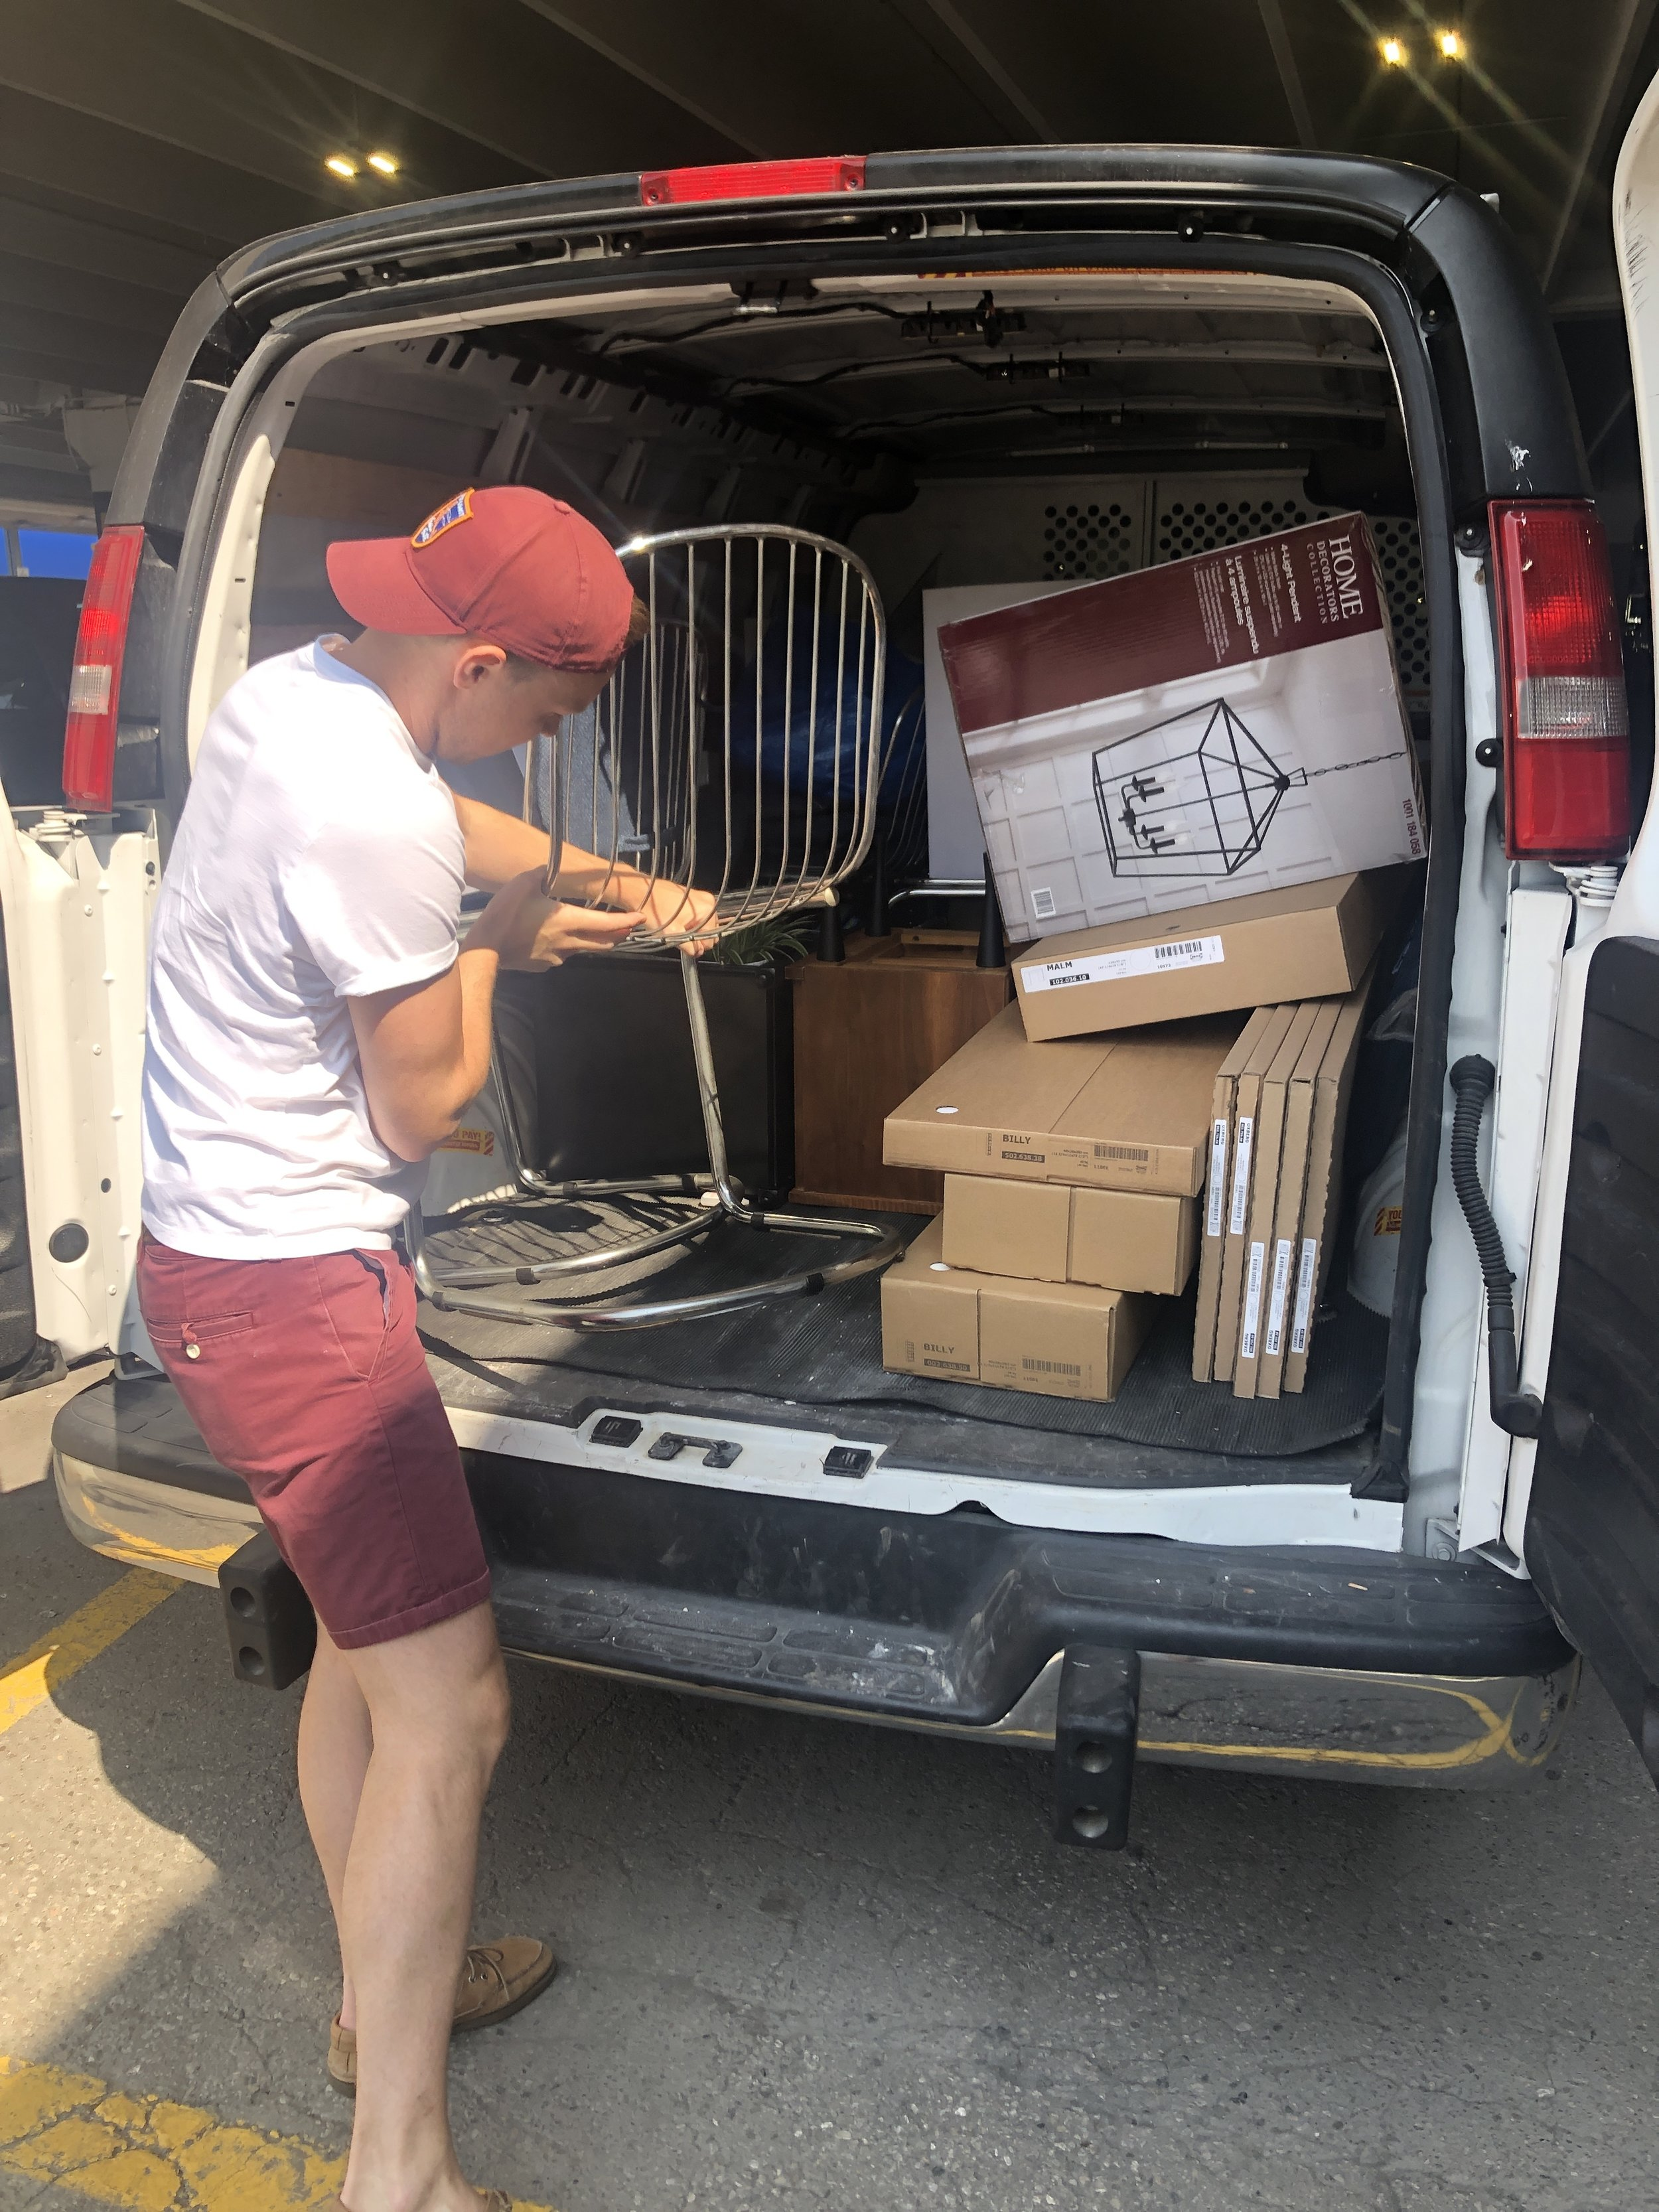 Loading up our rental van. This always feels like designer Tetris.